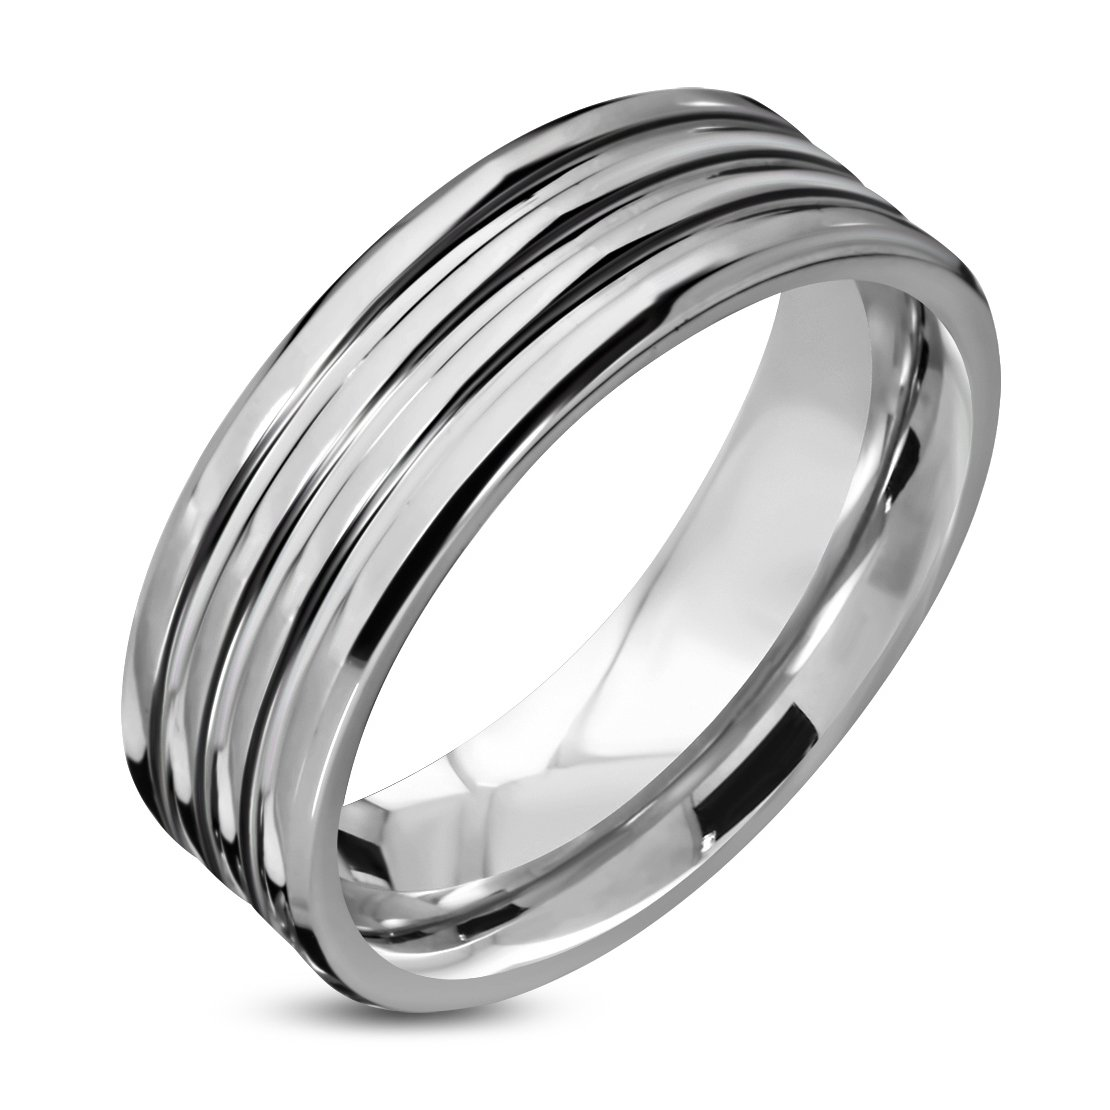 Tungsten Carbide Multi Grooved Comfort Fit Flat Band Ring